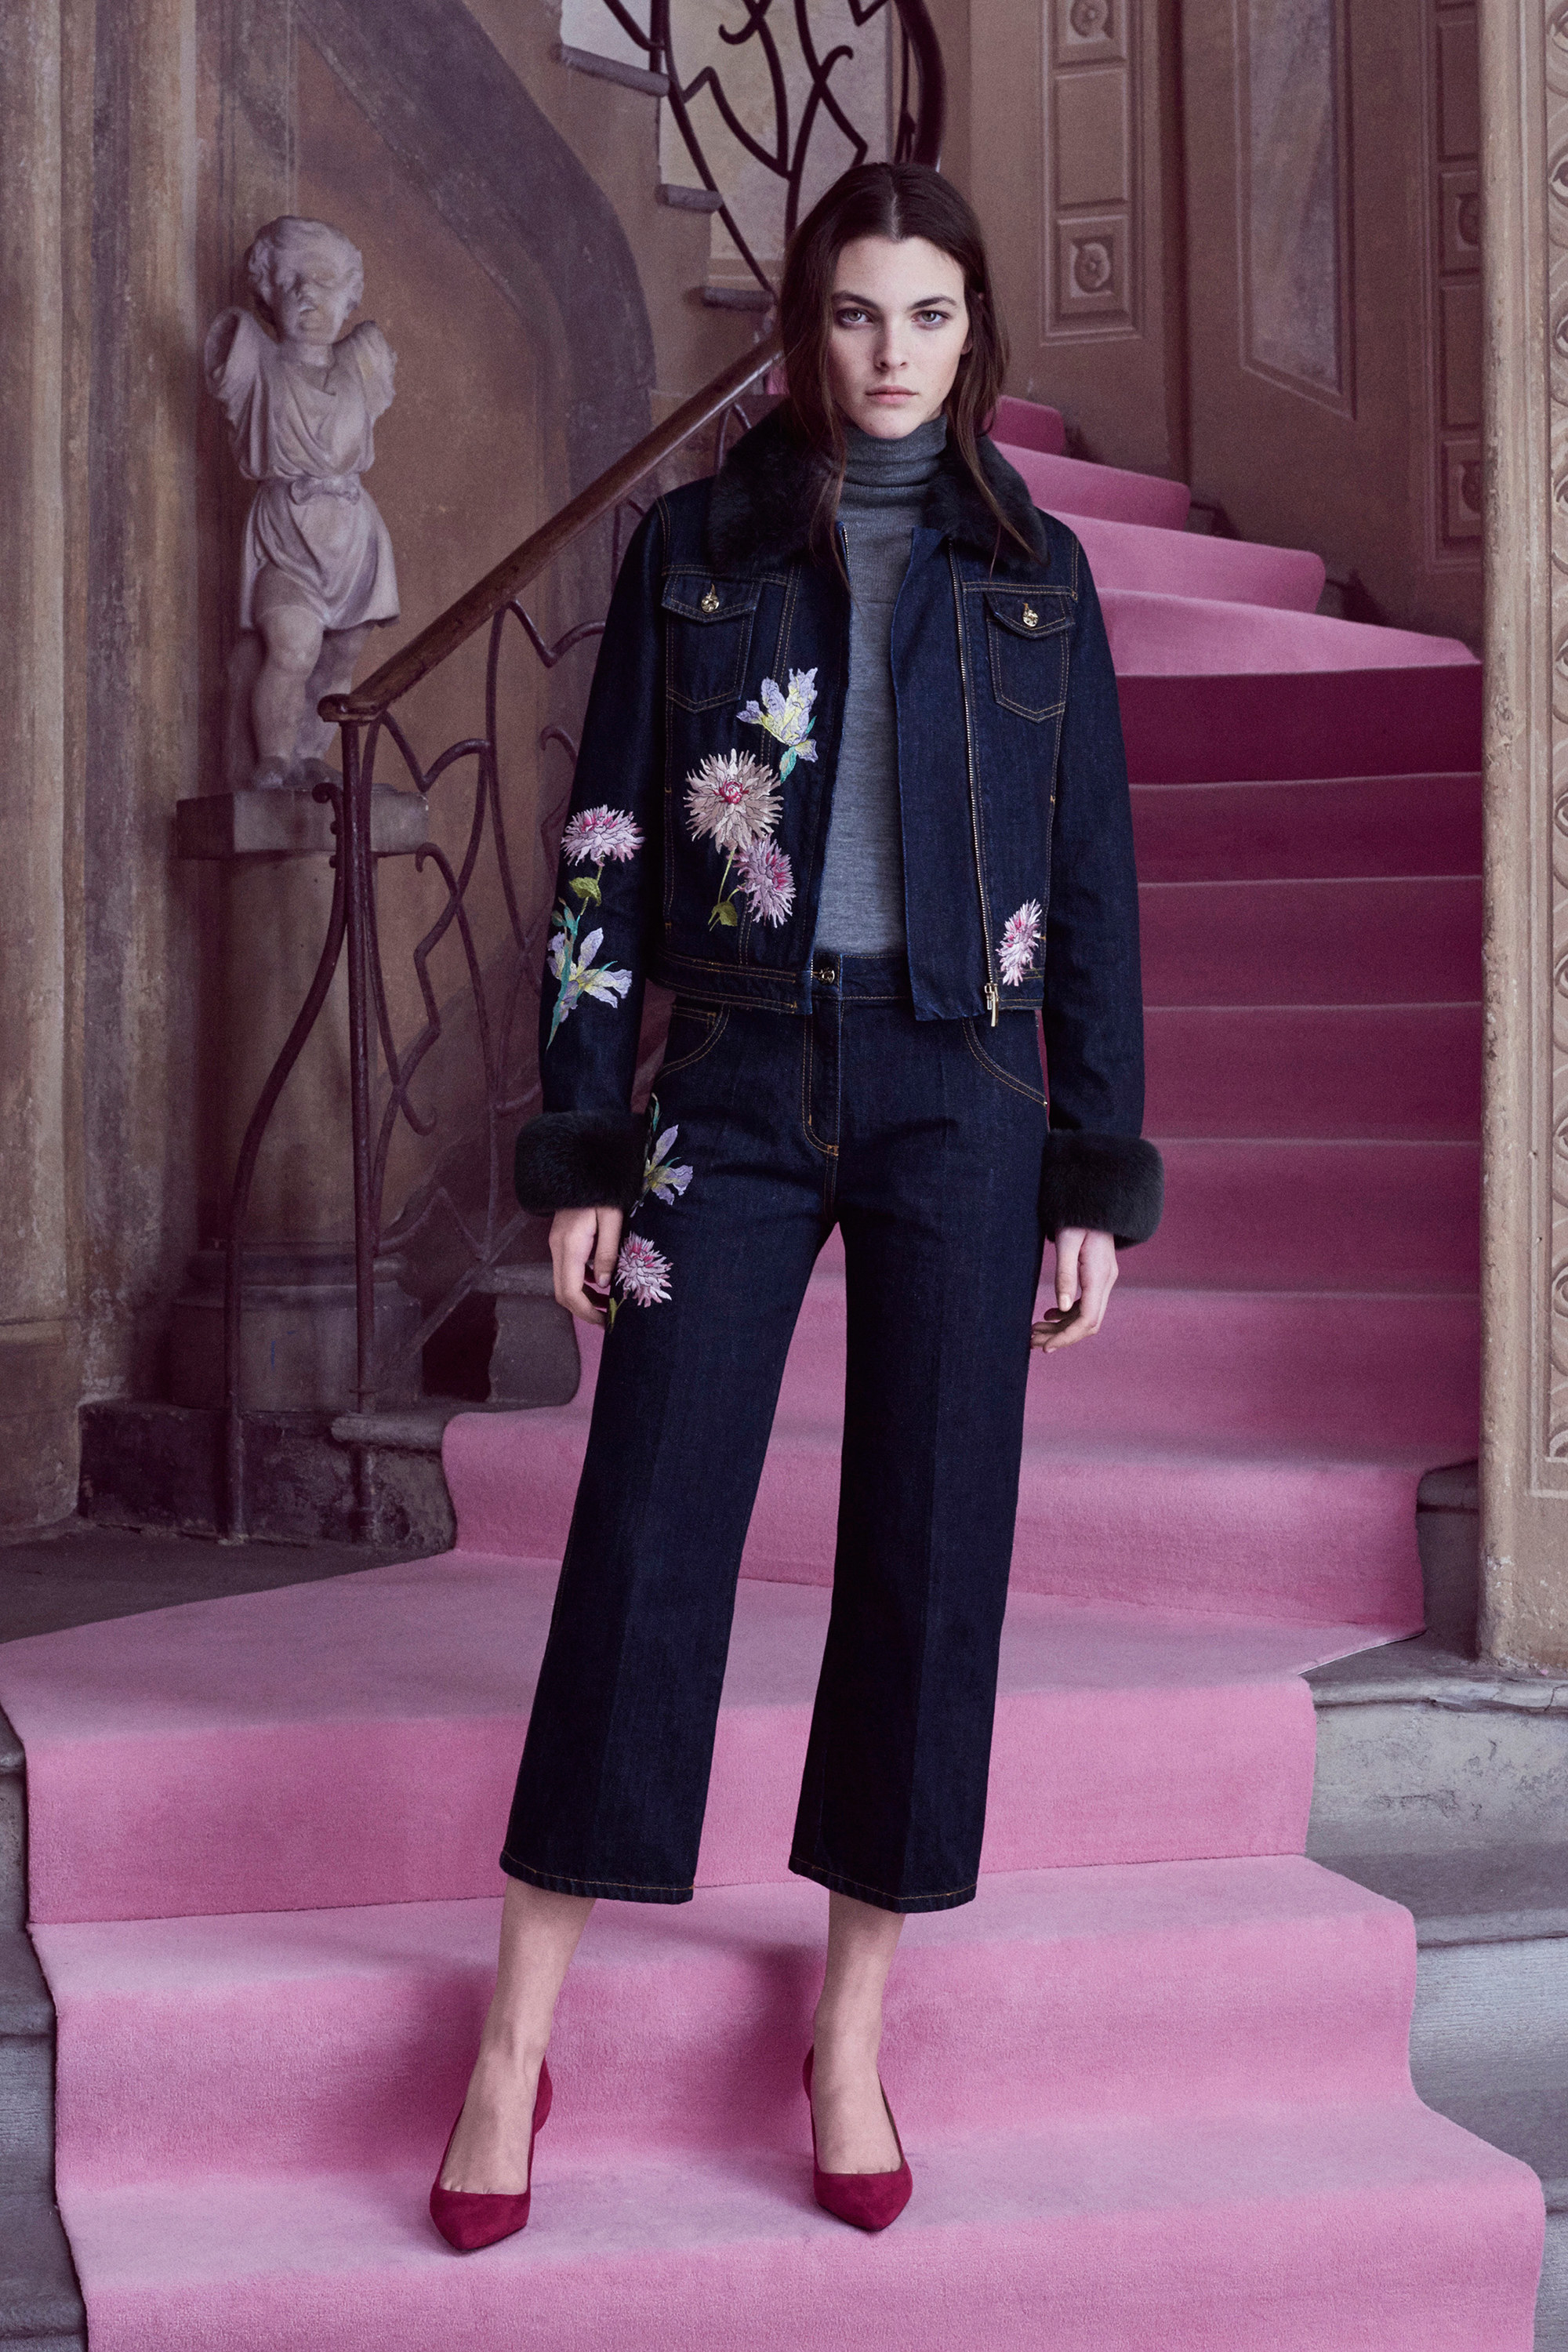 blumarine-pre-fall-2016-lookbook-17